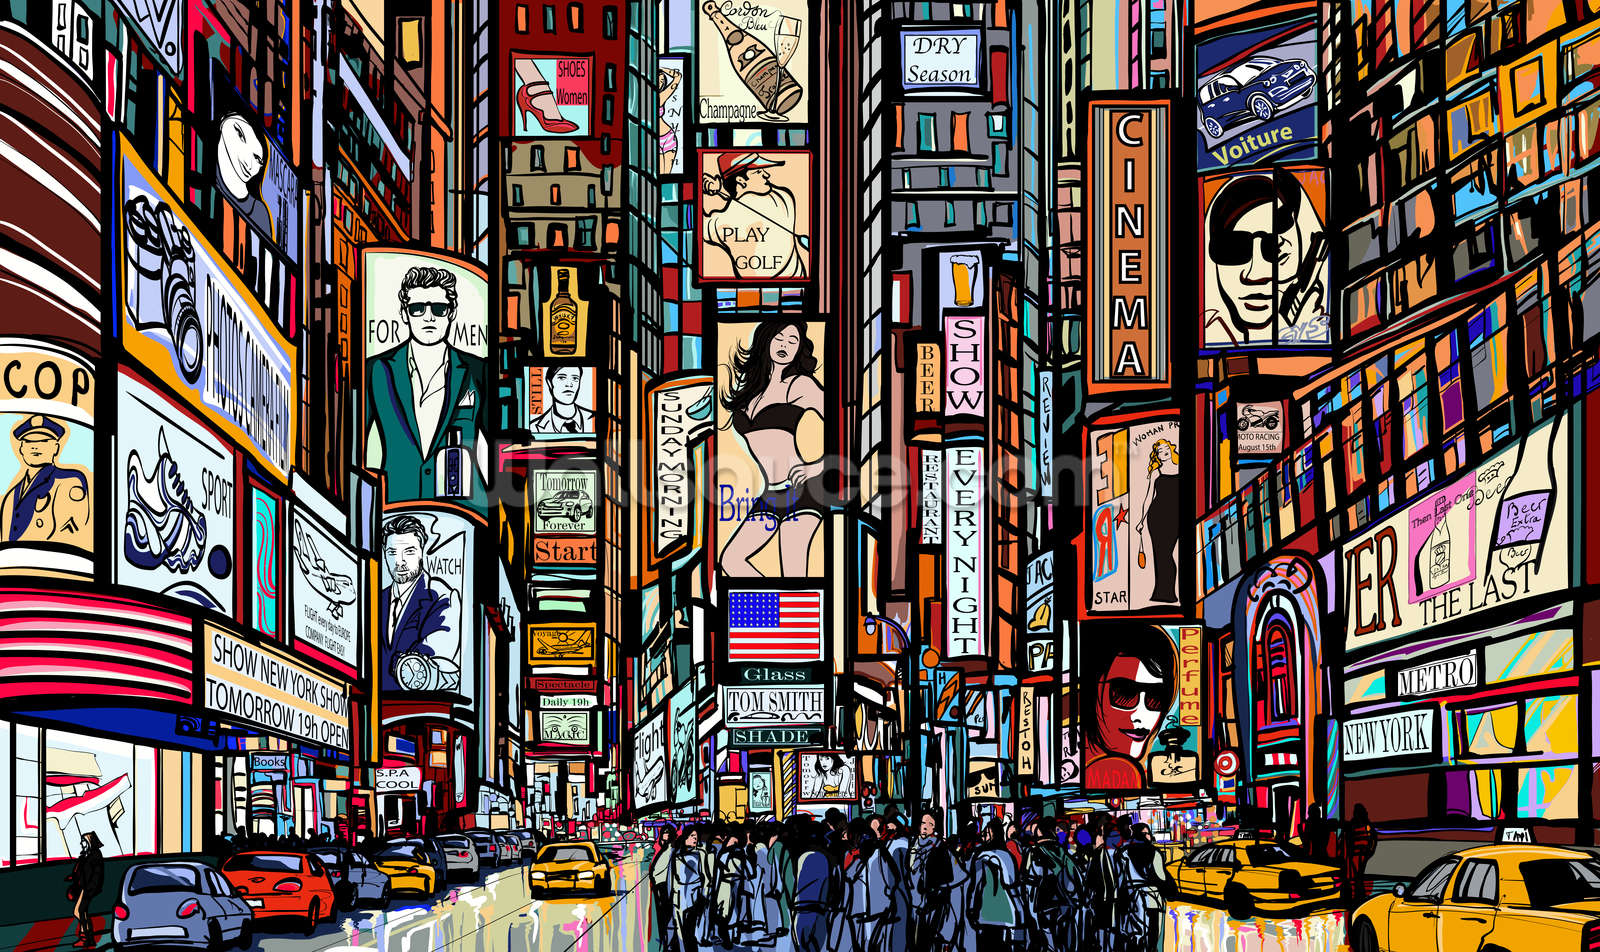 Times Square Abstract Wallpaper Mural